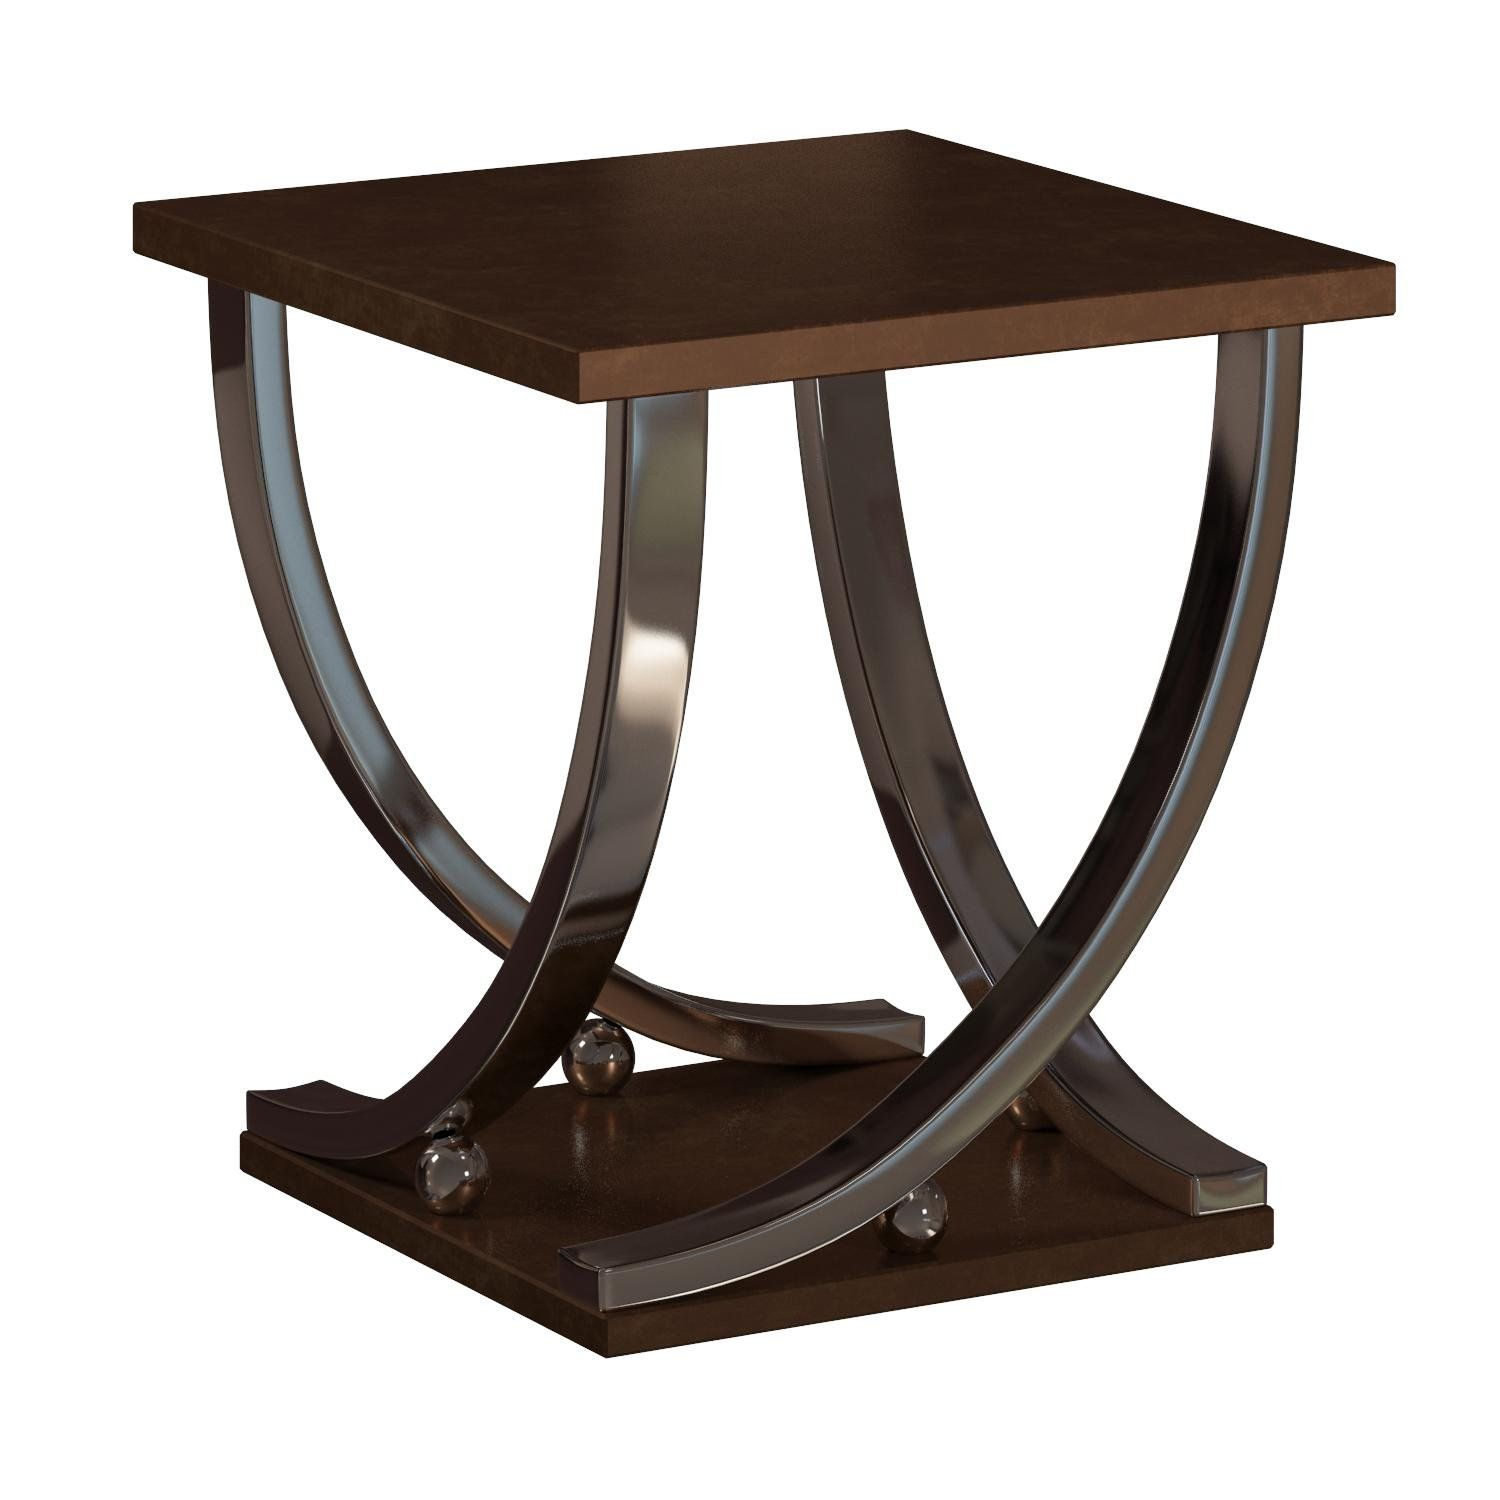 Ashley Furniture Signature Design Rollins End Table Contemporary Style Accent Table Coffee Table Design Modern Ashley Furniture Ashley Furniture Living Room